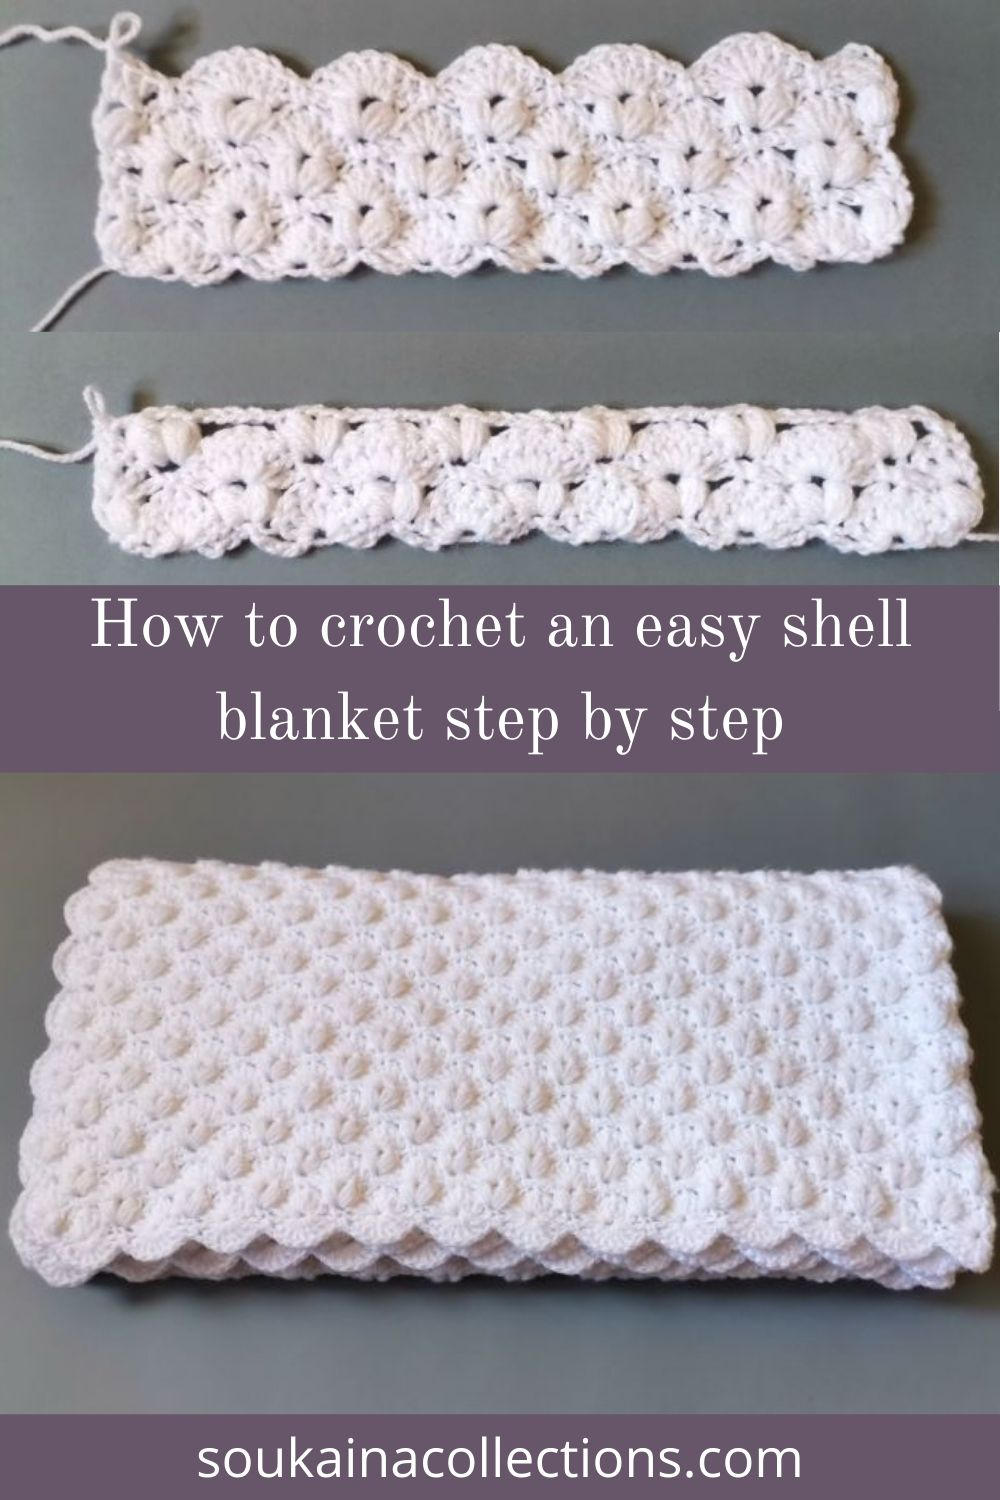 how to crochet a blanket step by step